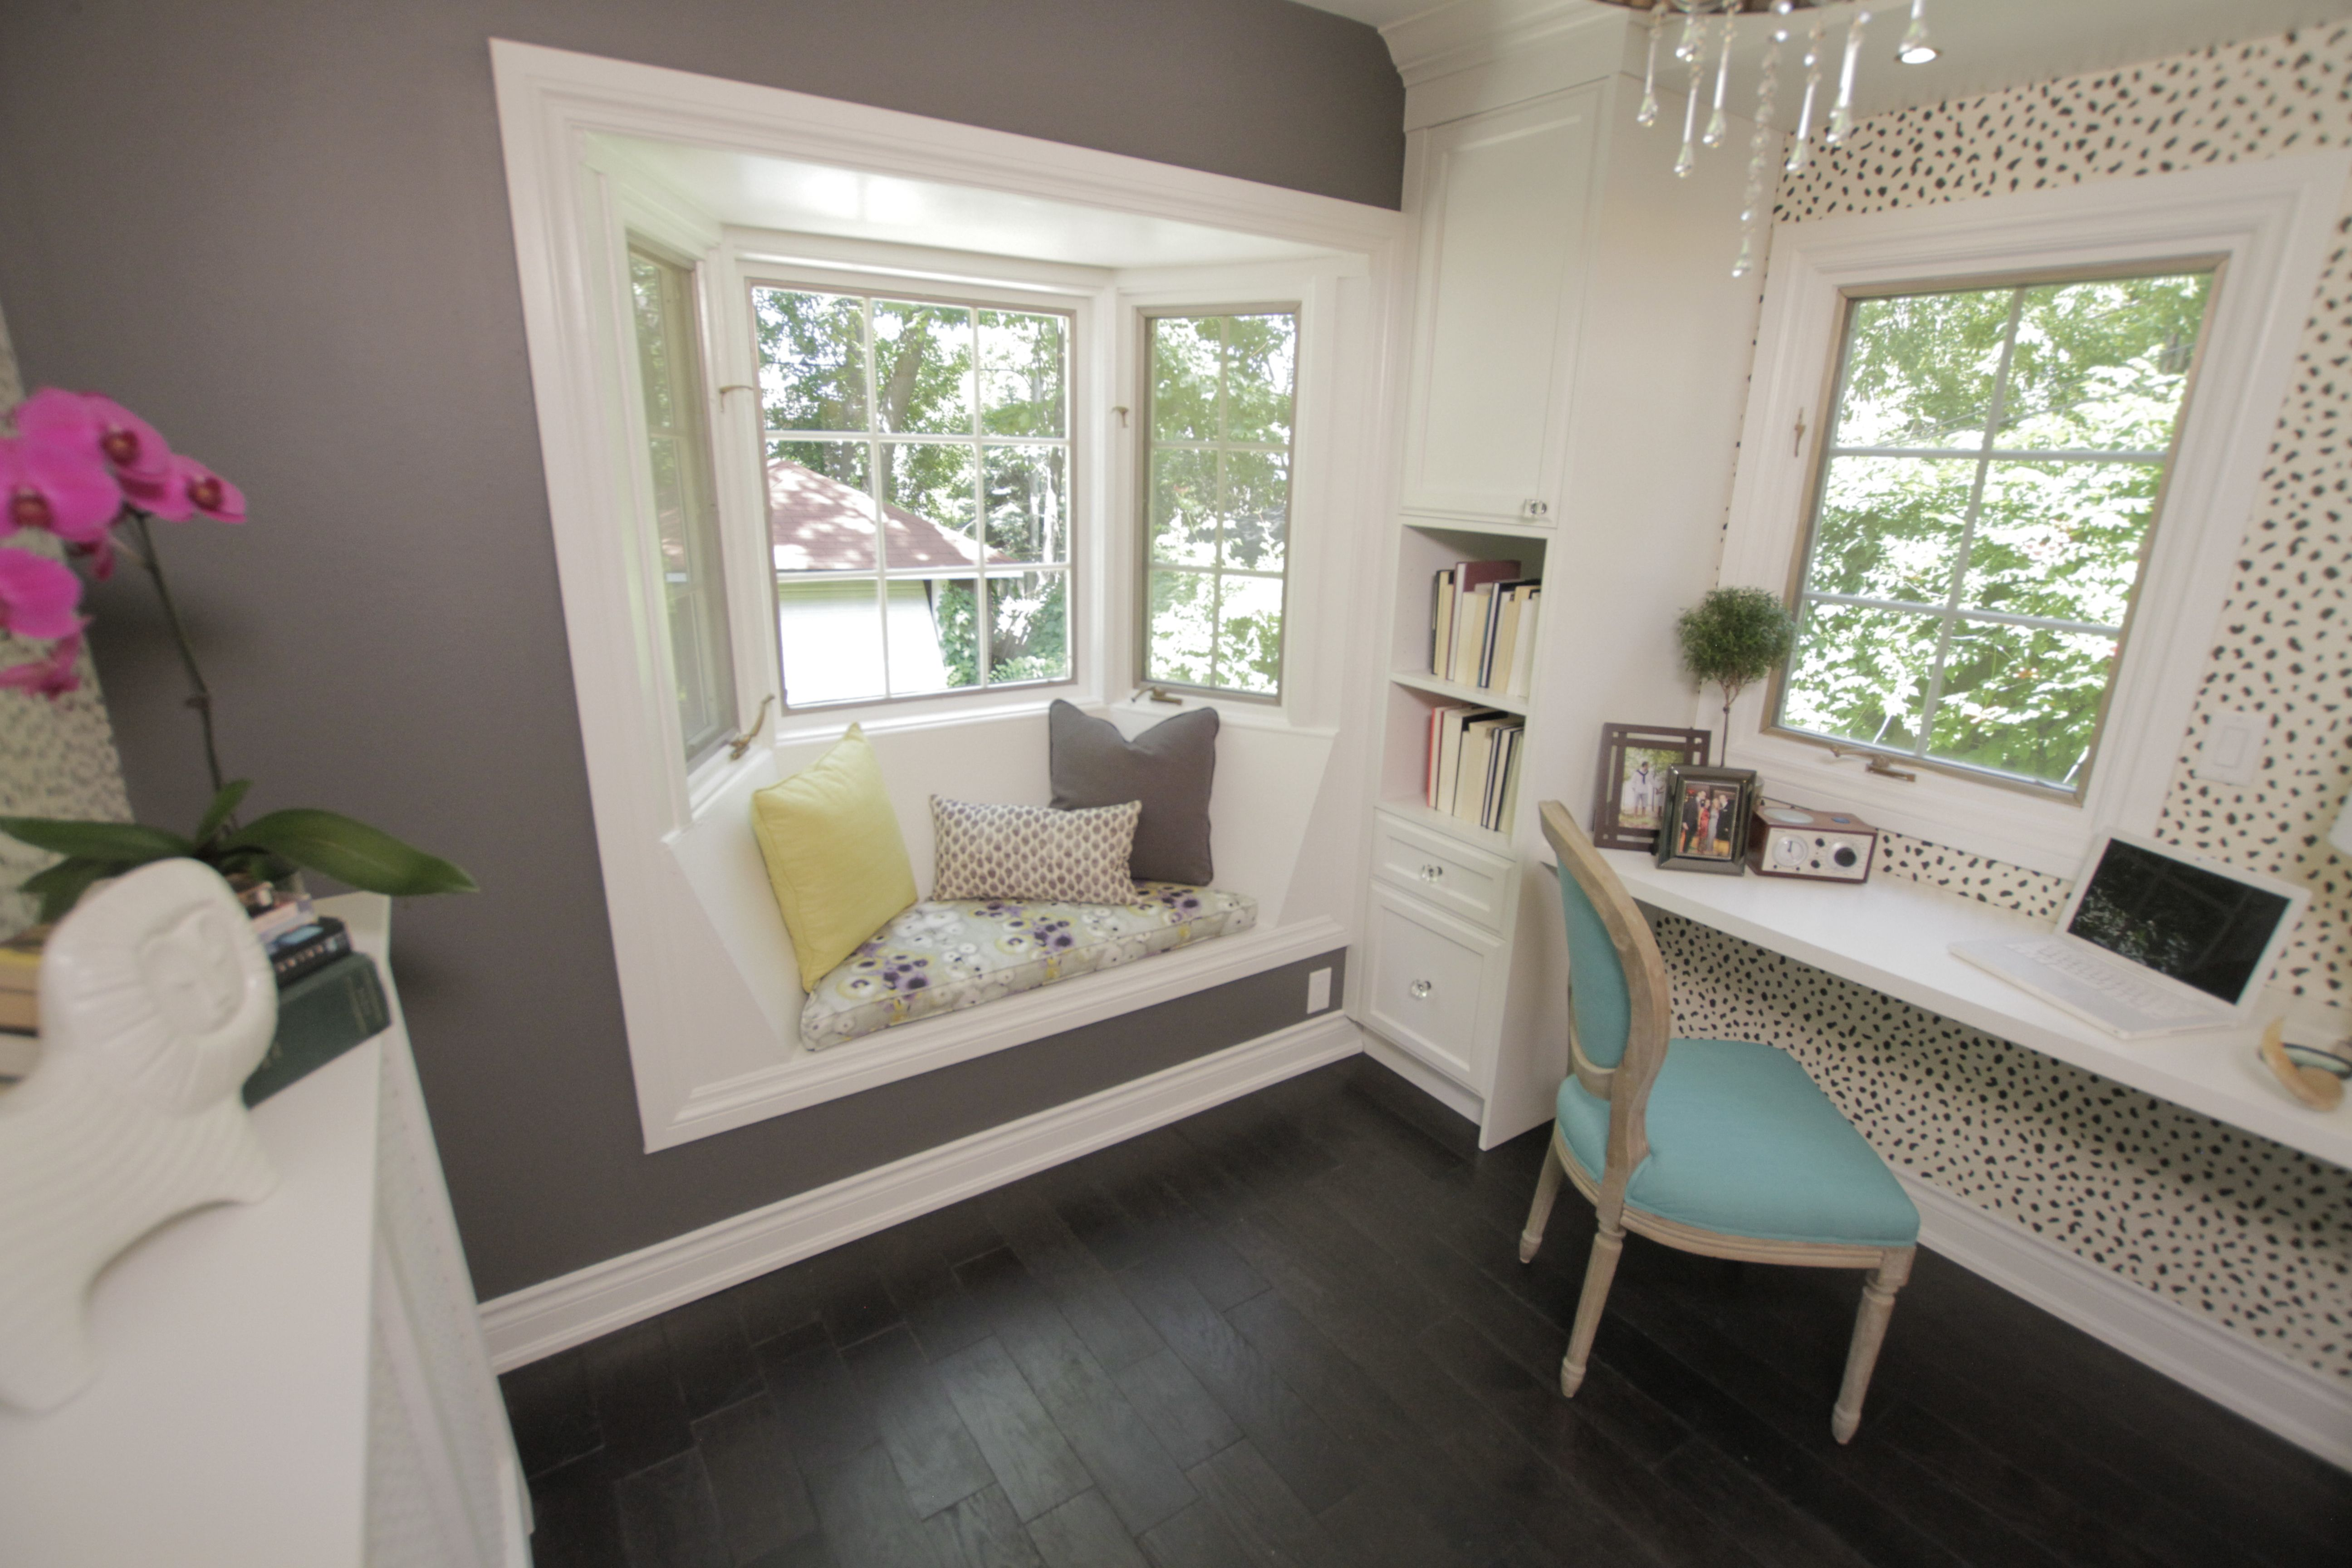 I like the window seat and that the desk is built right into the wall with a window to look out! Probably instead of a dresser, I would have some type of supply/file storage.